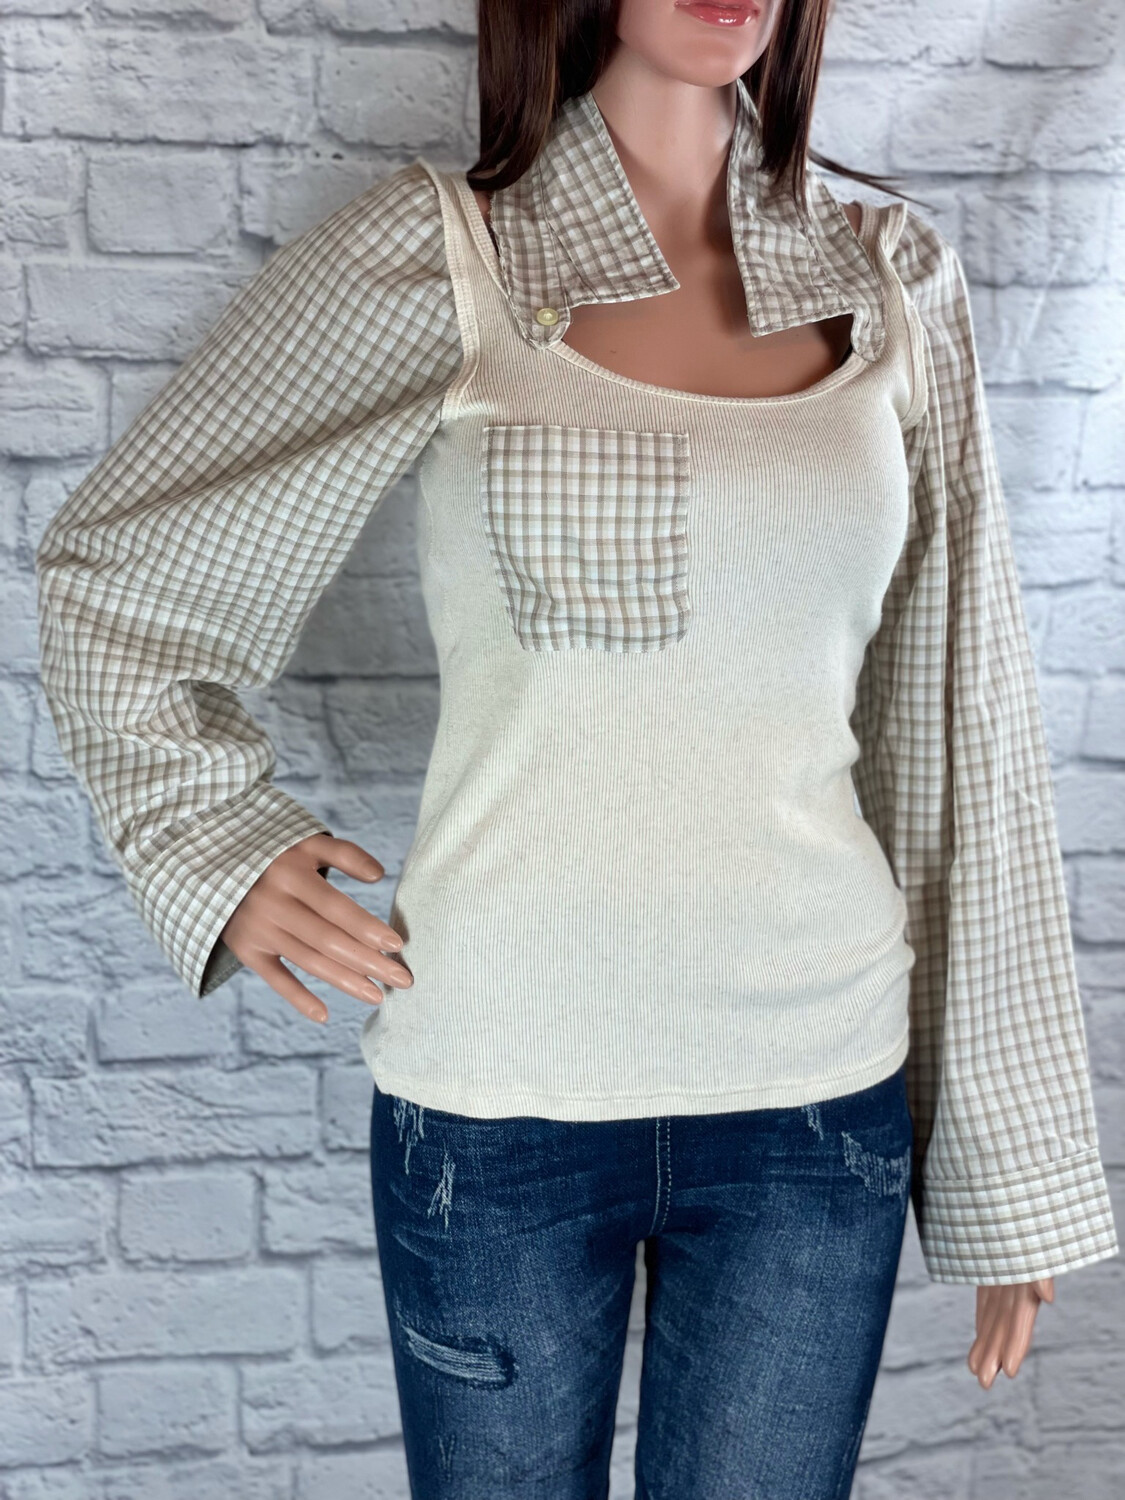 S Threads Upcycled Top Long Sleeve Collar Poof Sleeve Size S/M/L